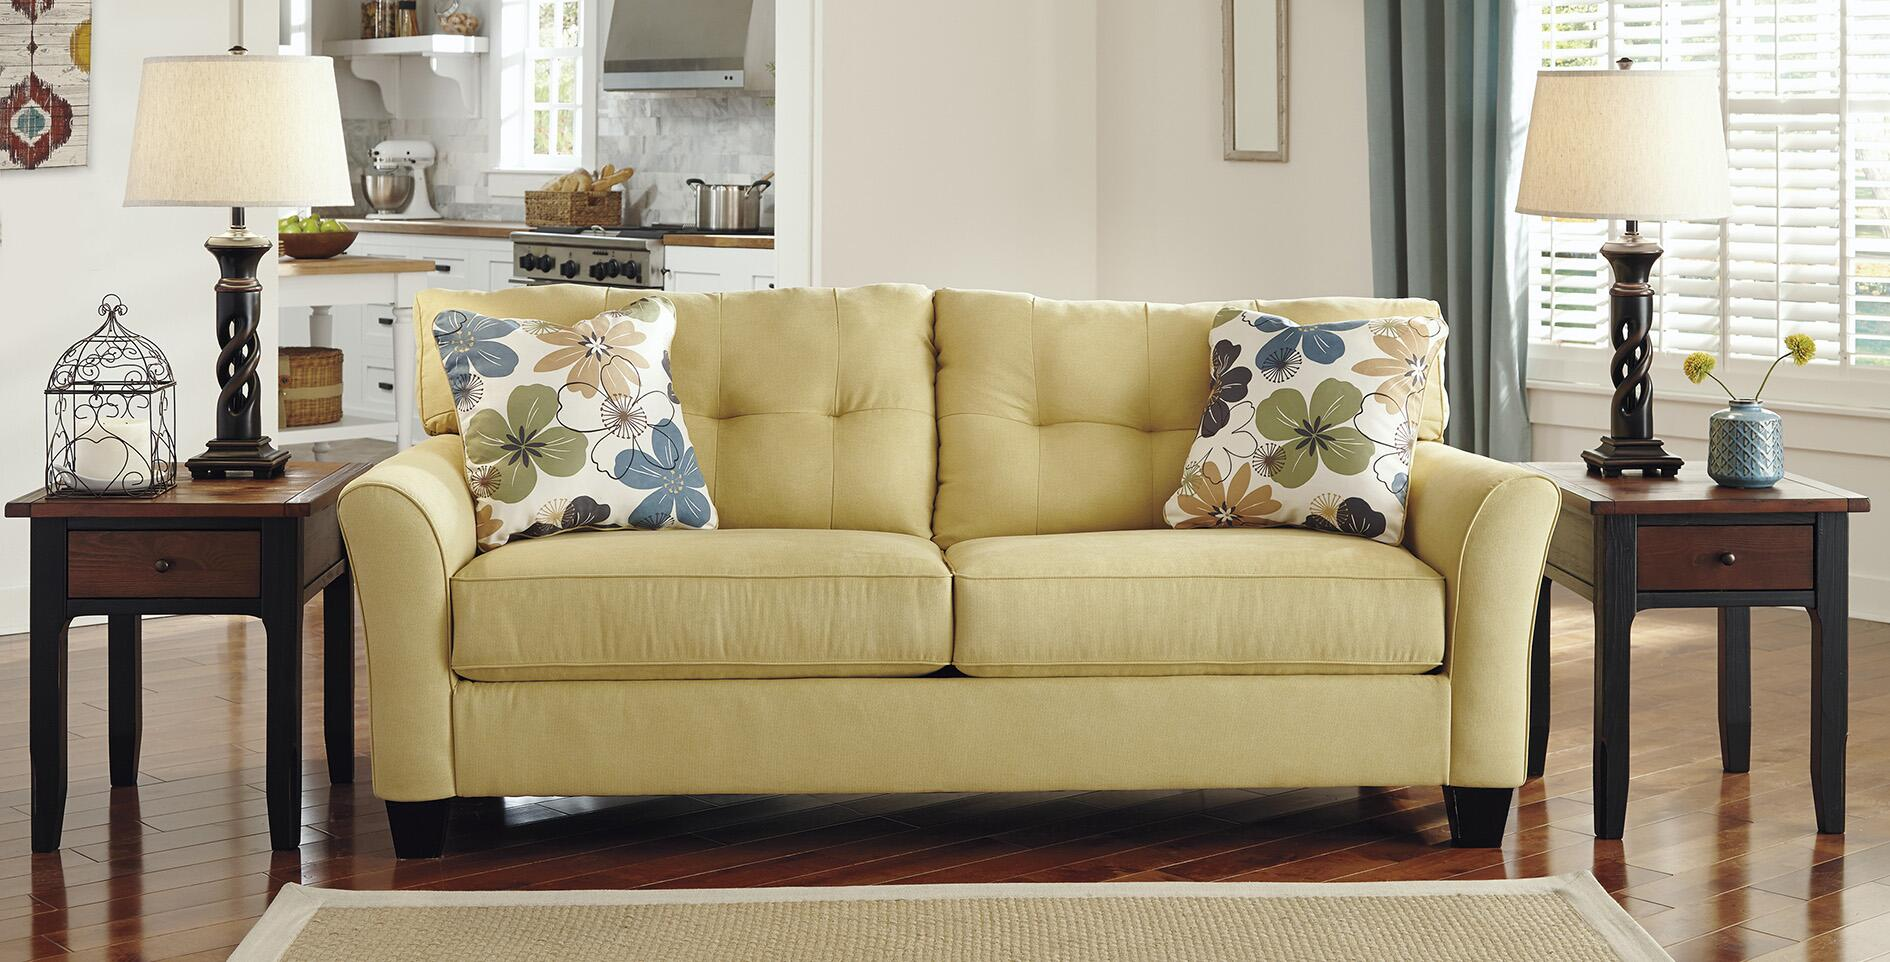 Ashley kylee goldenrod sofa review for Ashley kylee chaise